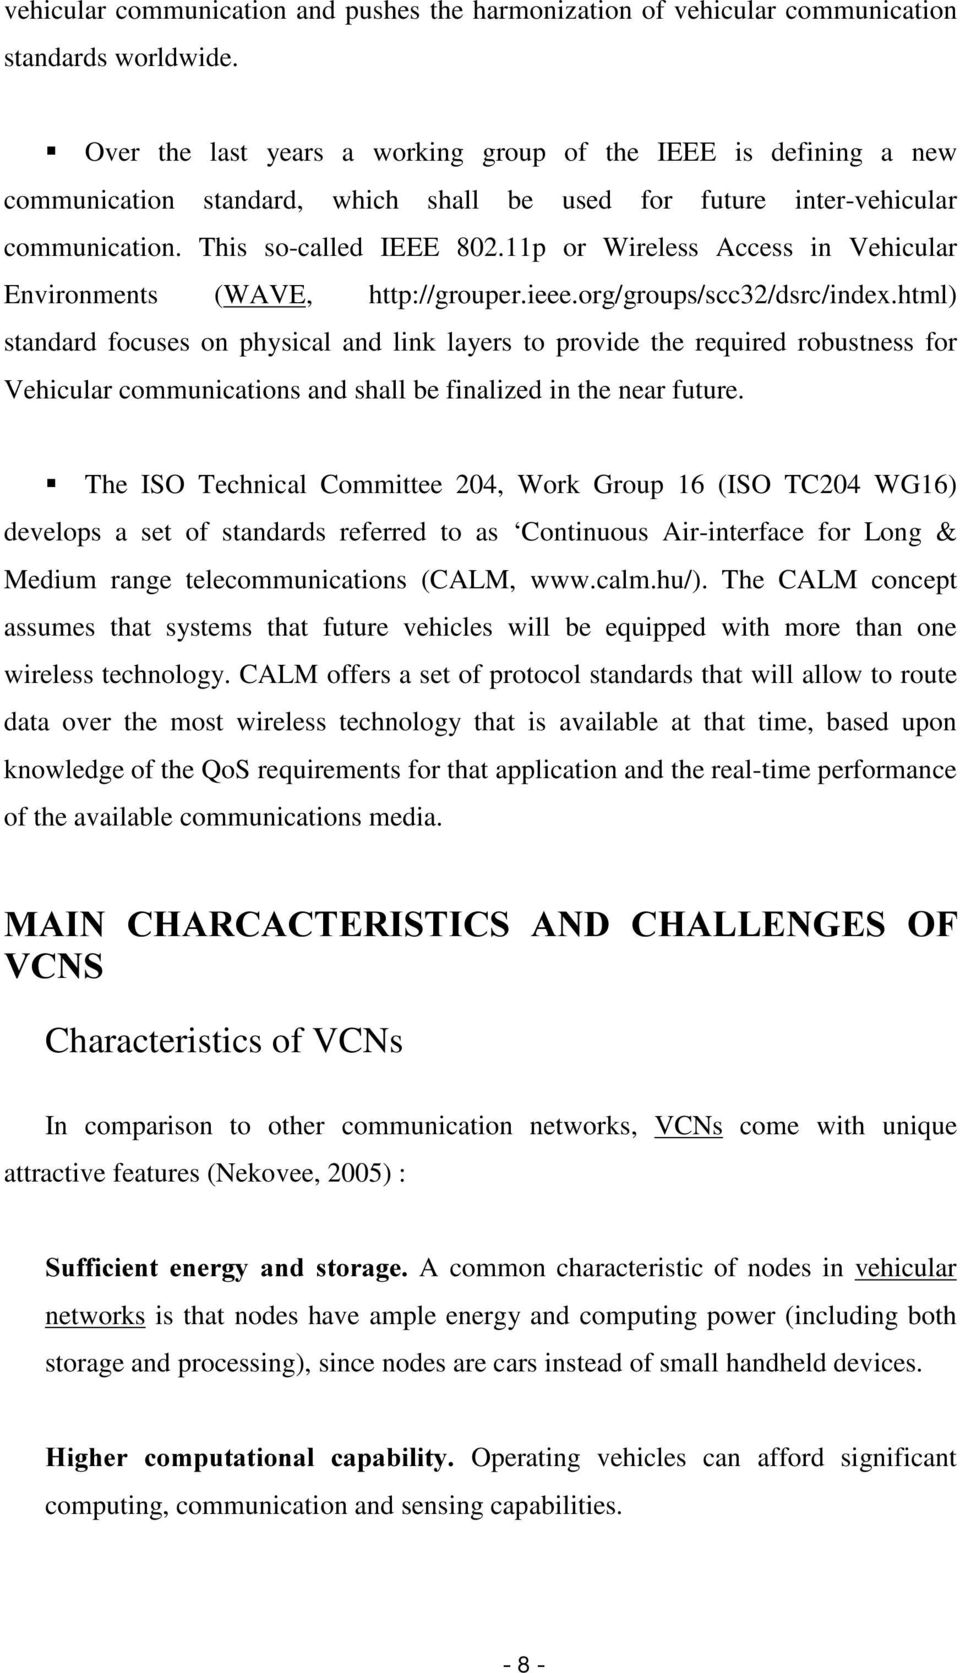 11p or Wireless Access in Vehicular Environments (WAVE, http://grouper.ieee.org/groups/scc32/dsrc/index.